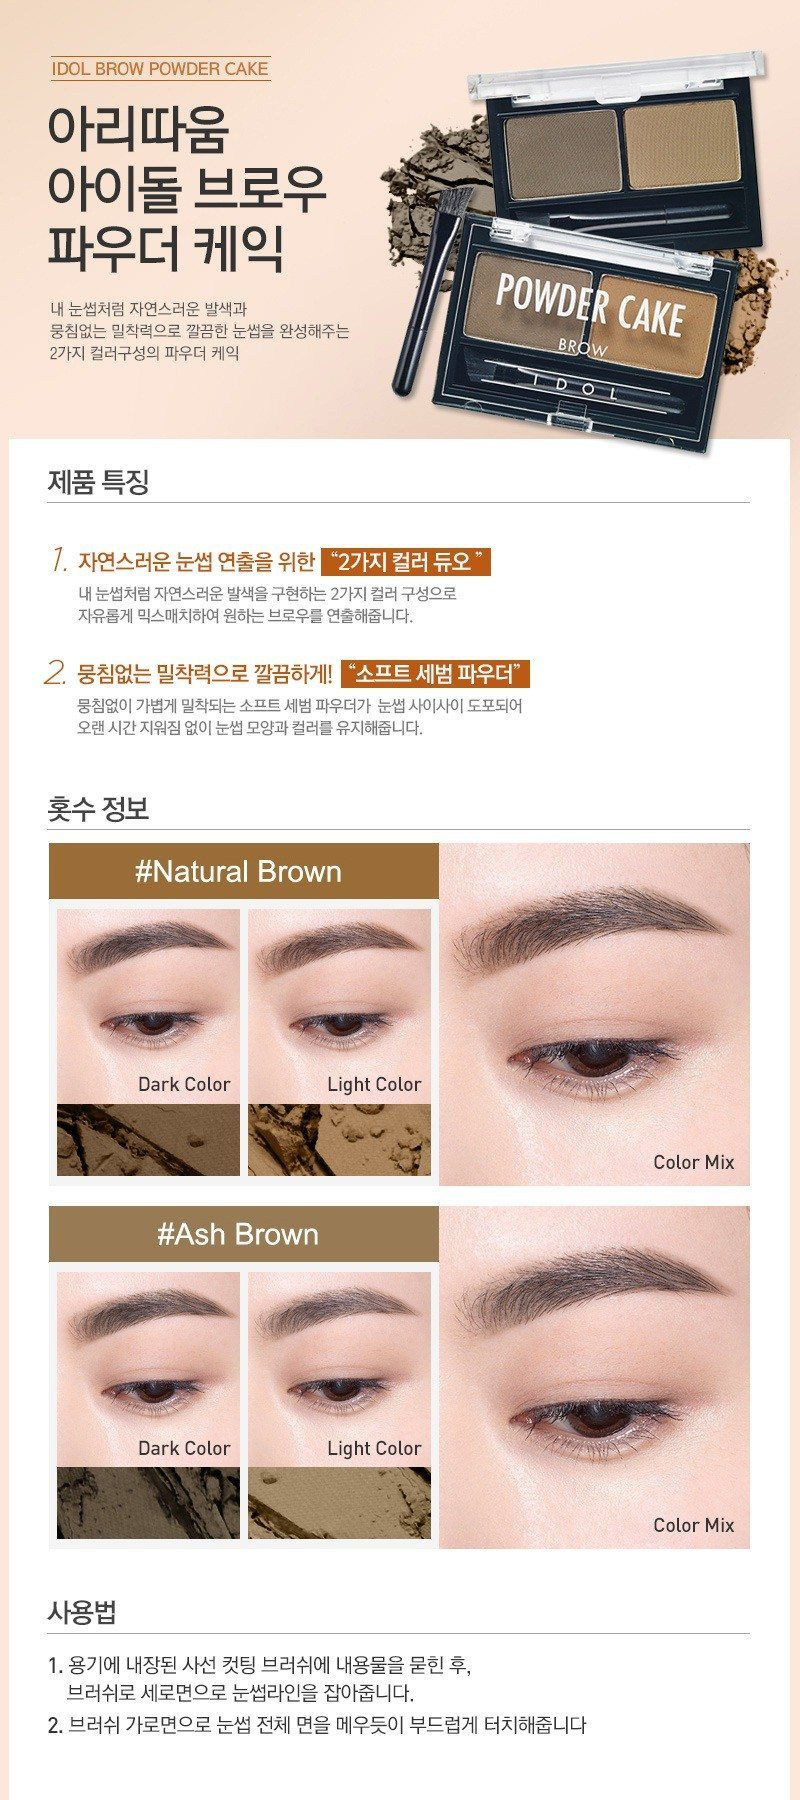 aritaum idol brow powder cake 4g korean cosmetic makeup. Black Bedroom Furniture Sets. Home Design Ideas